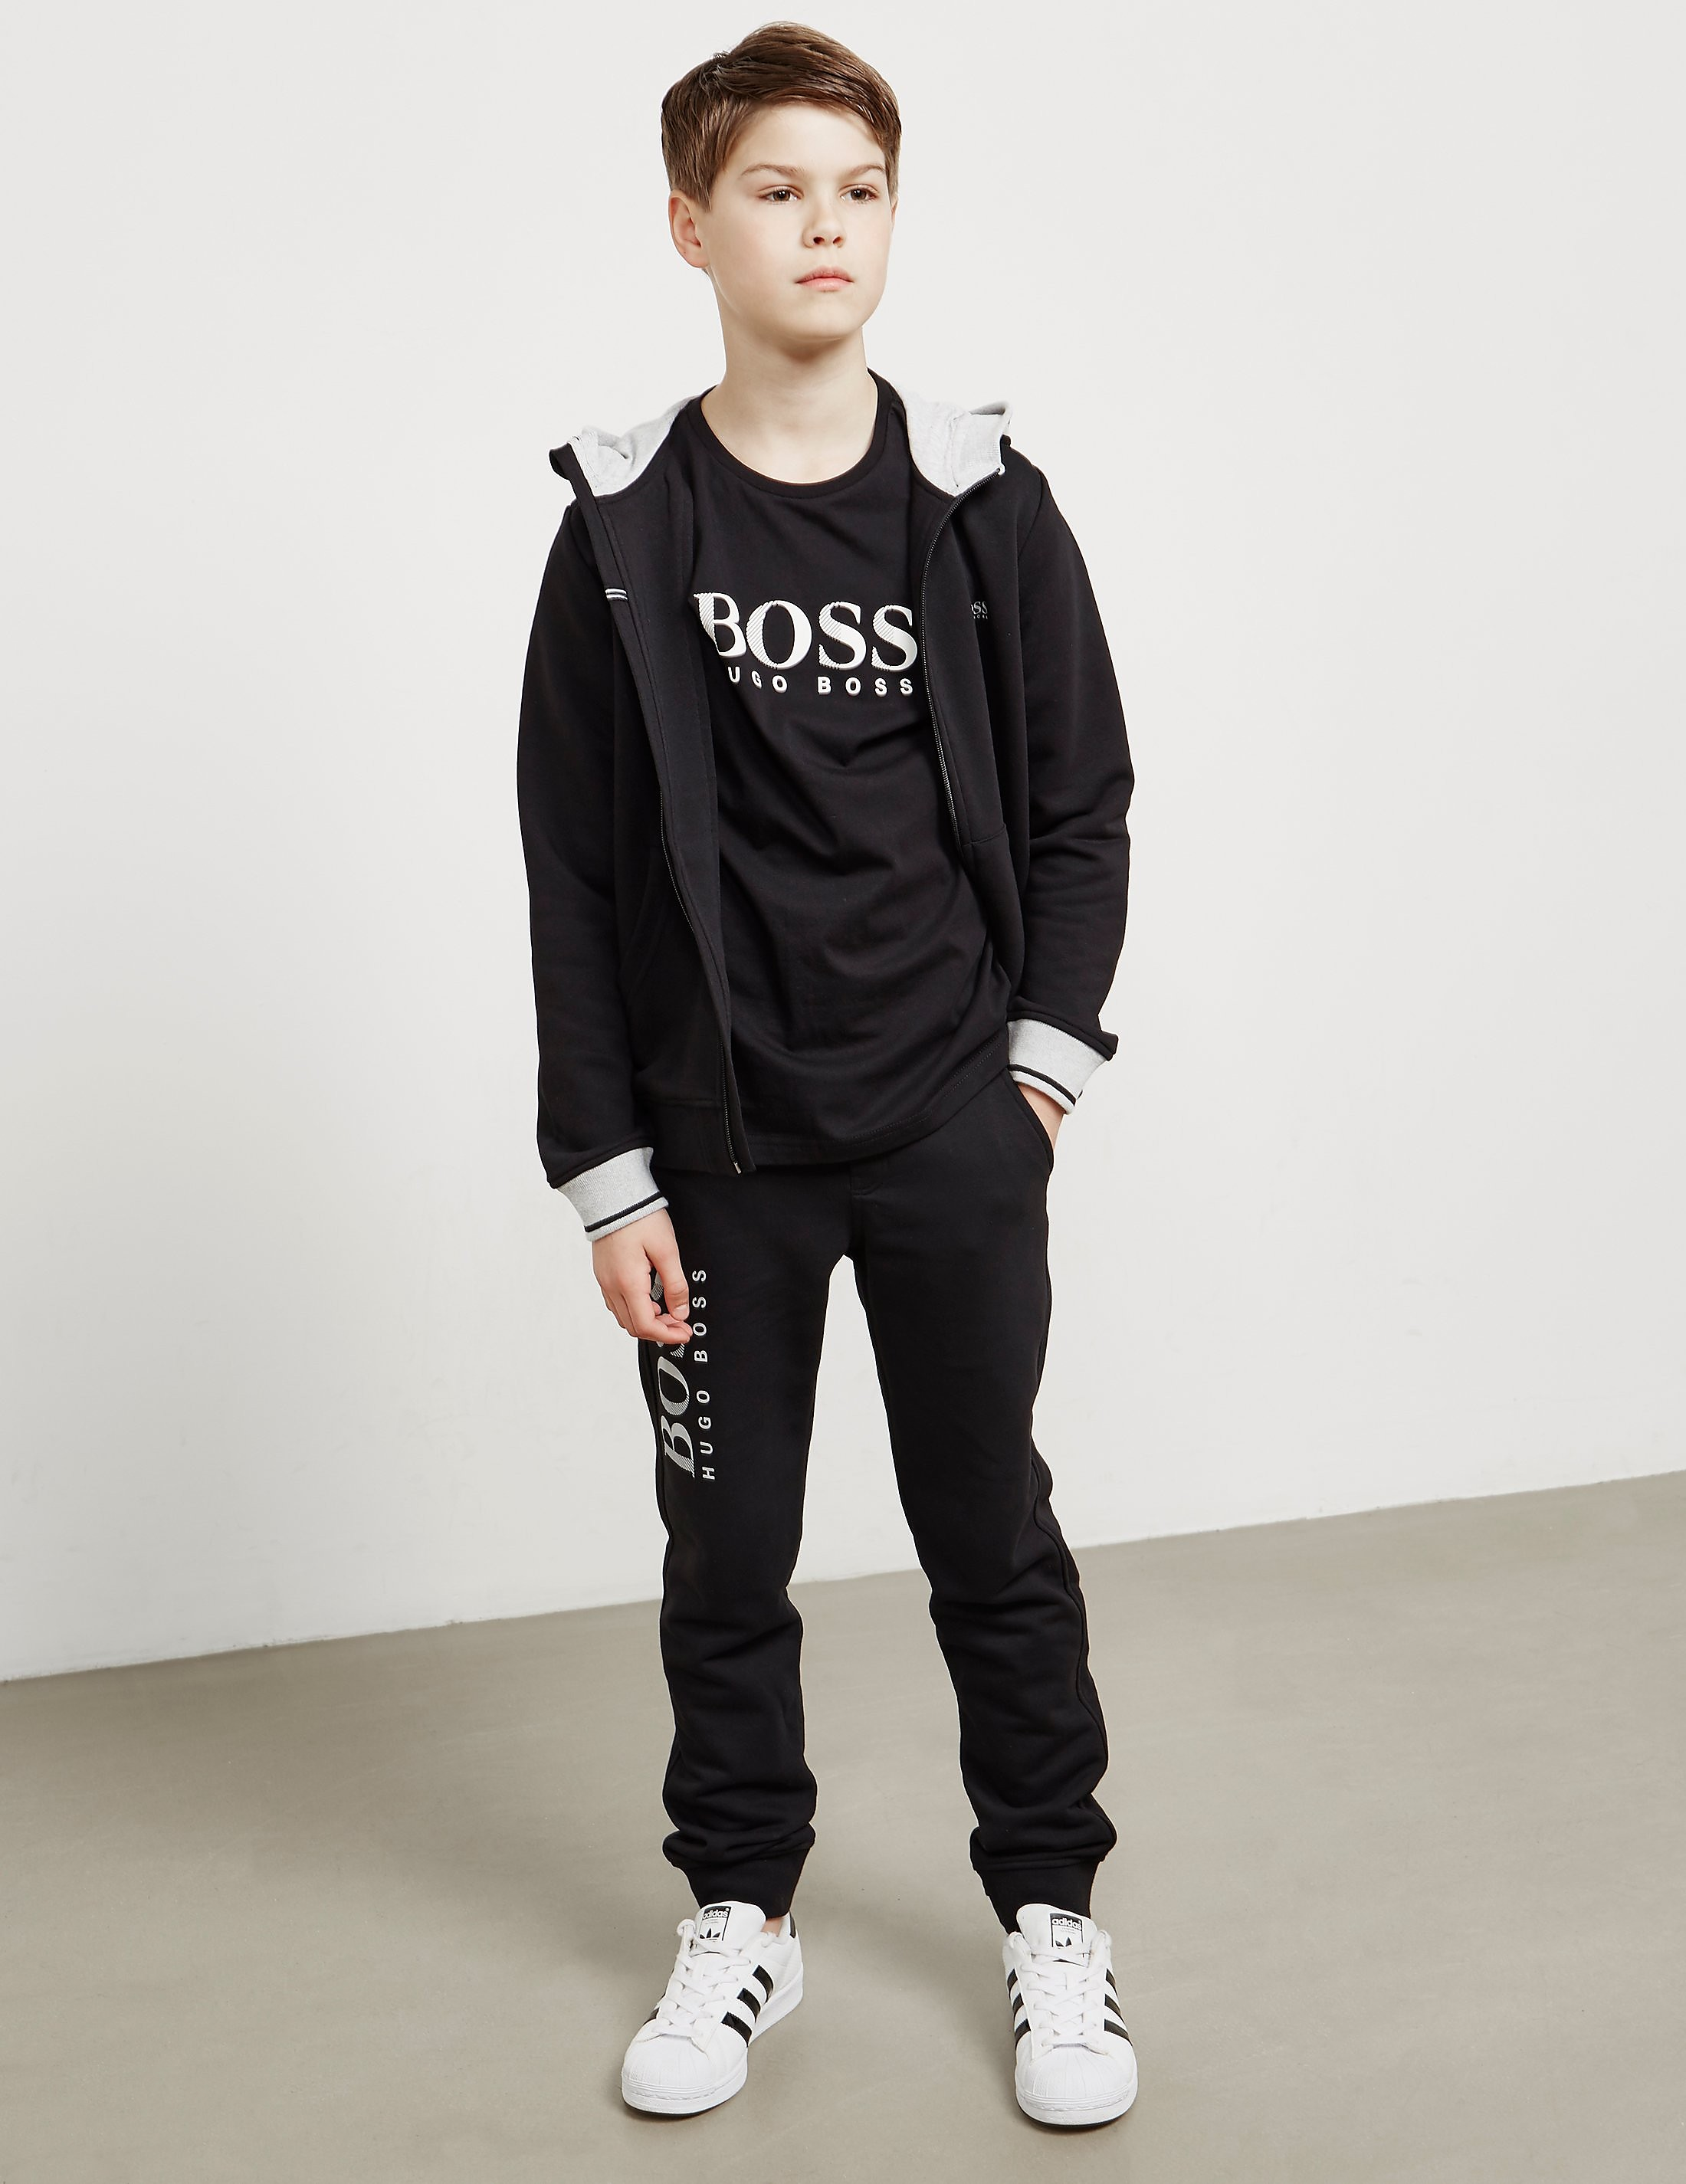 BOSS Logo Full Zip Hoody